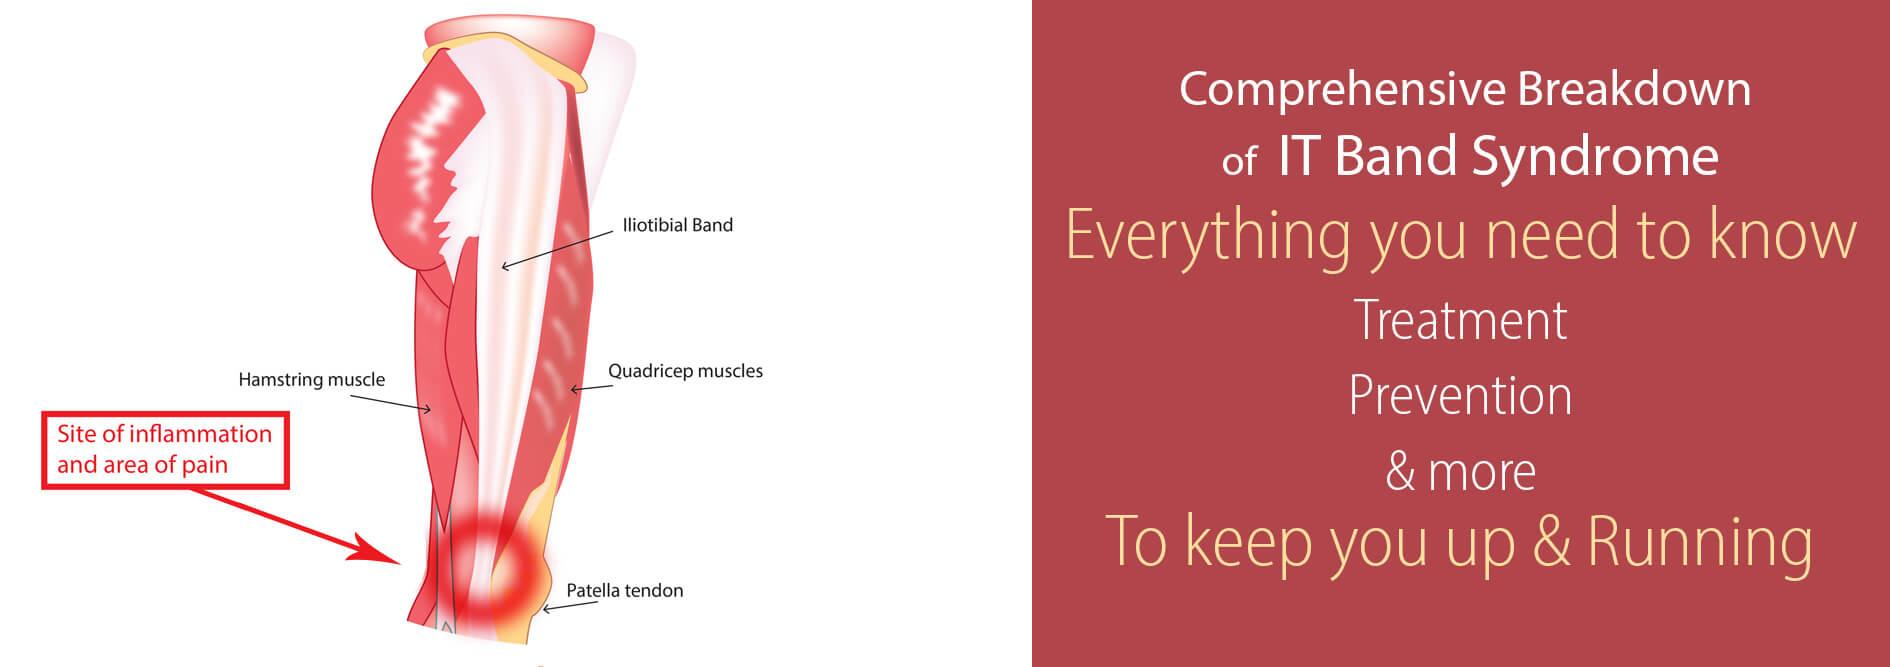 IT-Band-Syndrome-everything-you-need-to-know-the-complete-runners-guide